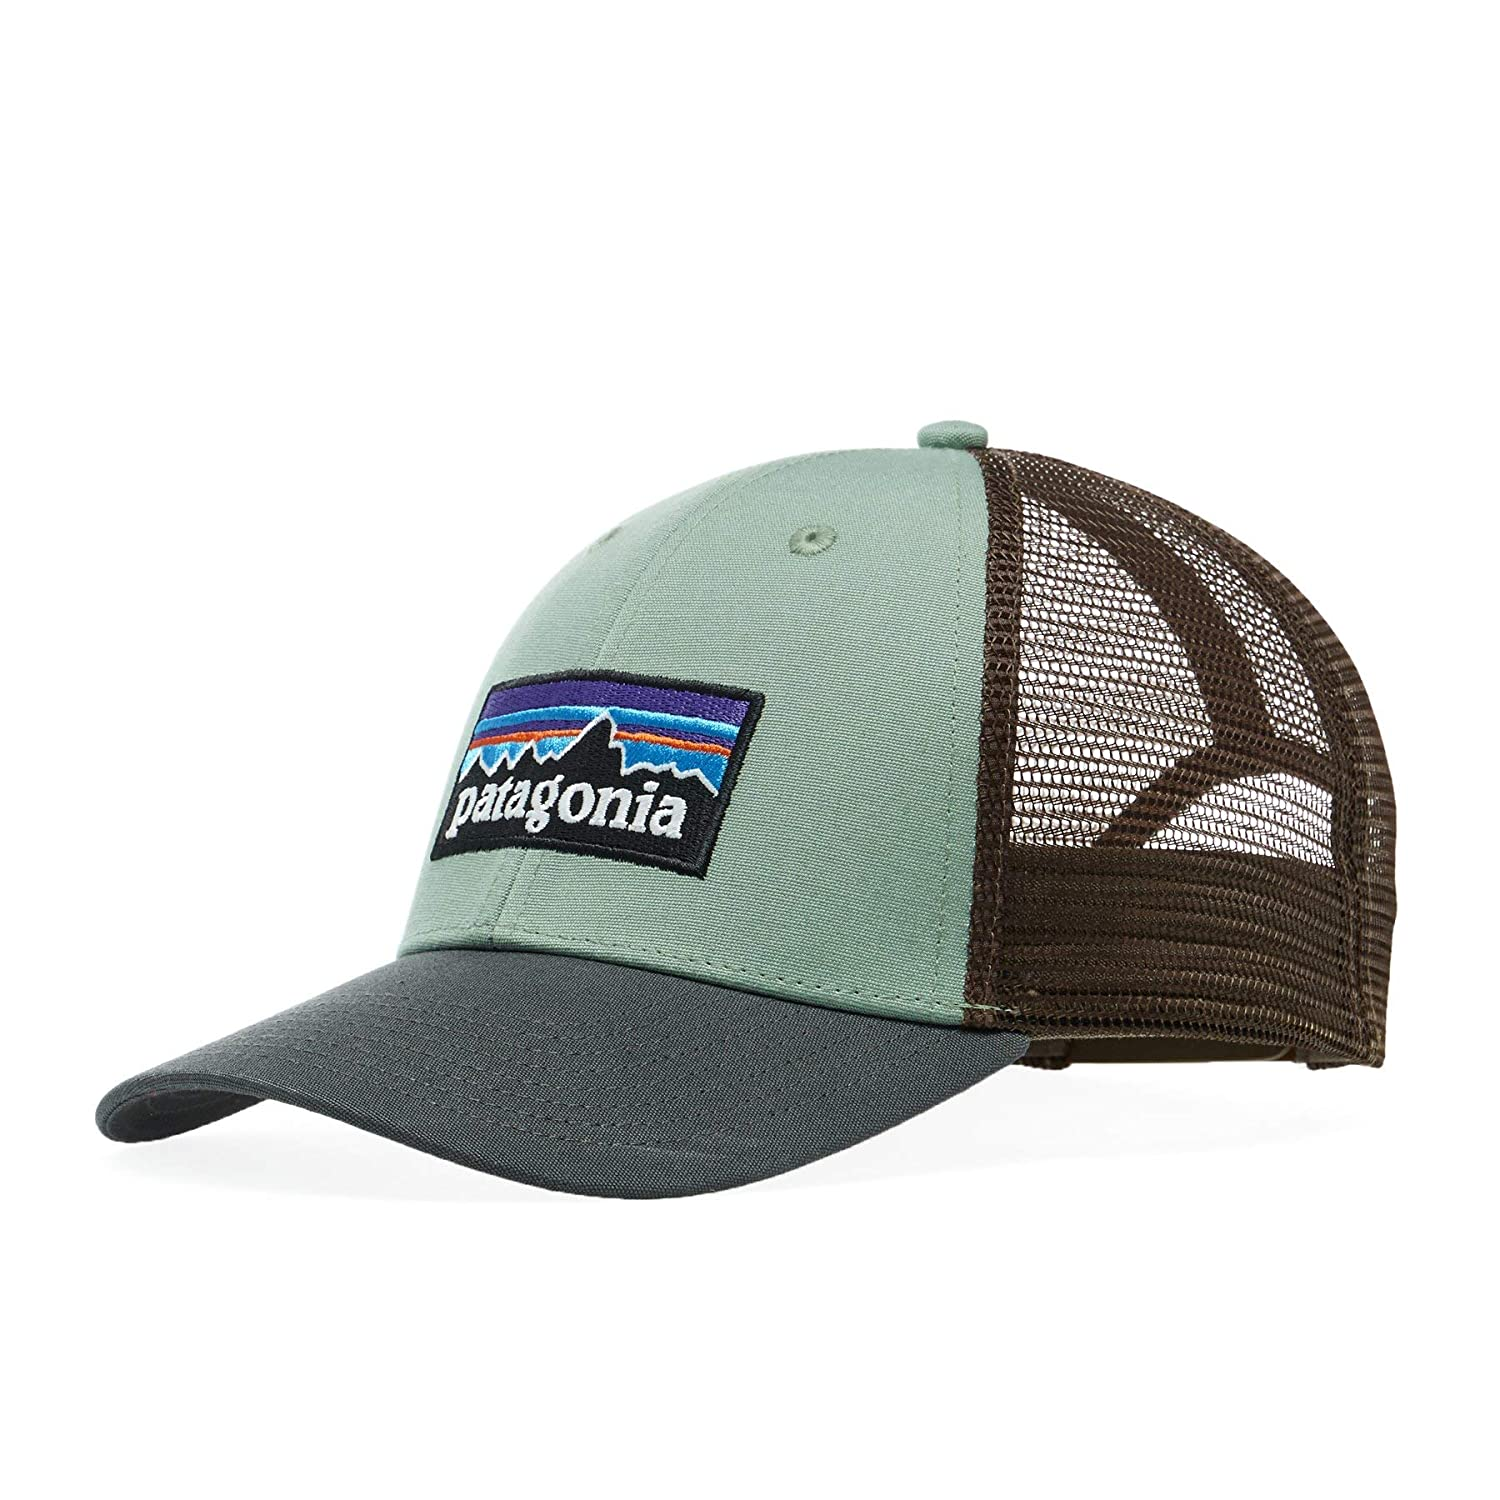 b8c0e384c0d54a Patagonia Hats P-6 Logo LoPro Trucker Cap - Olive-Brown Adjustable:  Amazon.co.uk: Clothing